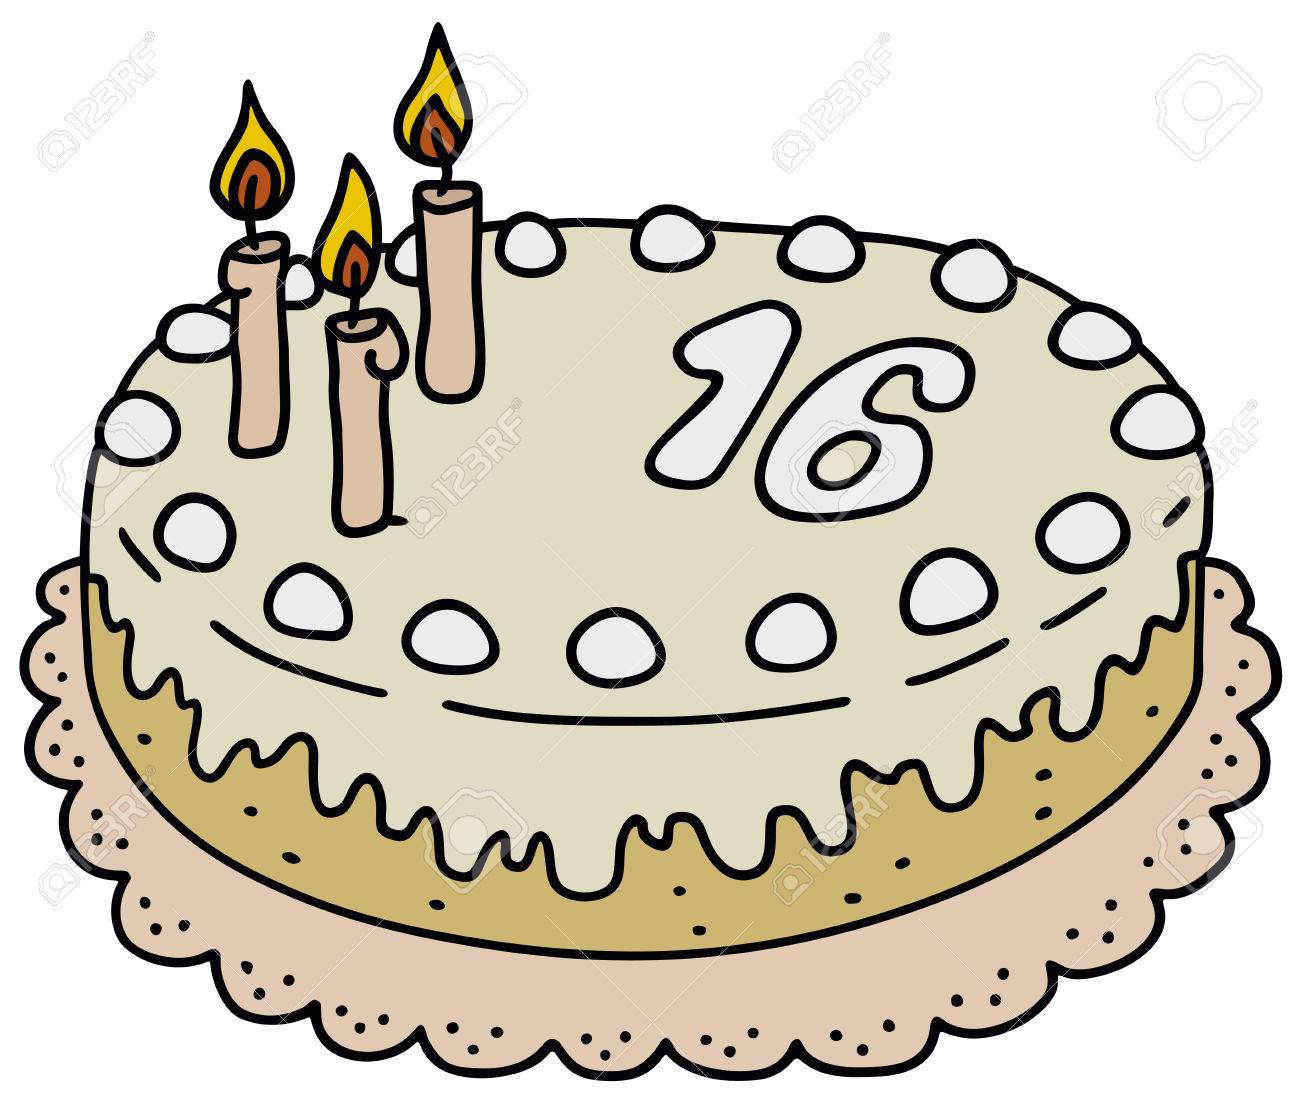 1300x1104 Hand Drawing Of A Birthday Cake Royalty Free Cliparts, Vectors